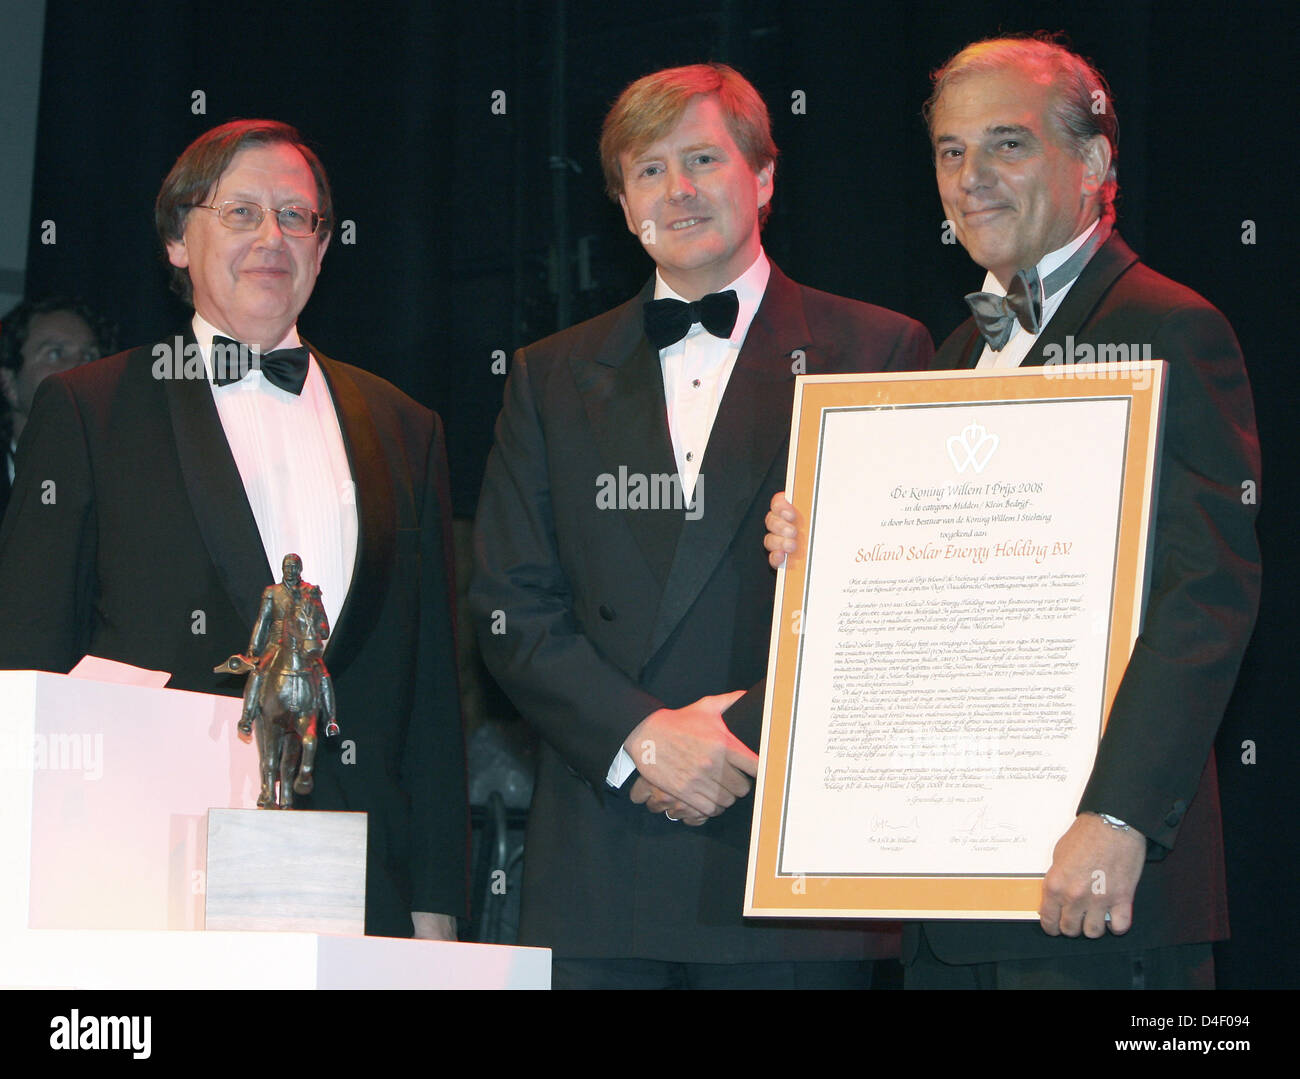 Crown Prince Willem-Alexander of the Netherlands (C) honours Klaas Wester of Fugro Consult (L) and Nout Welling, - Stock Image